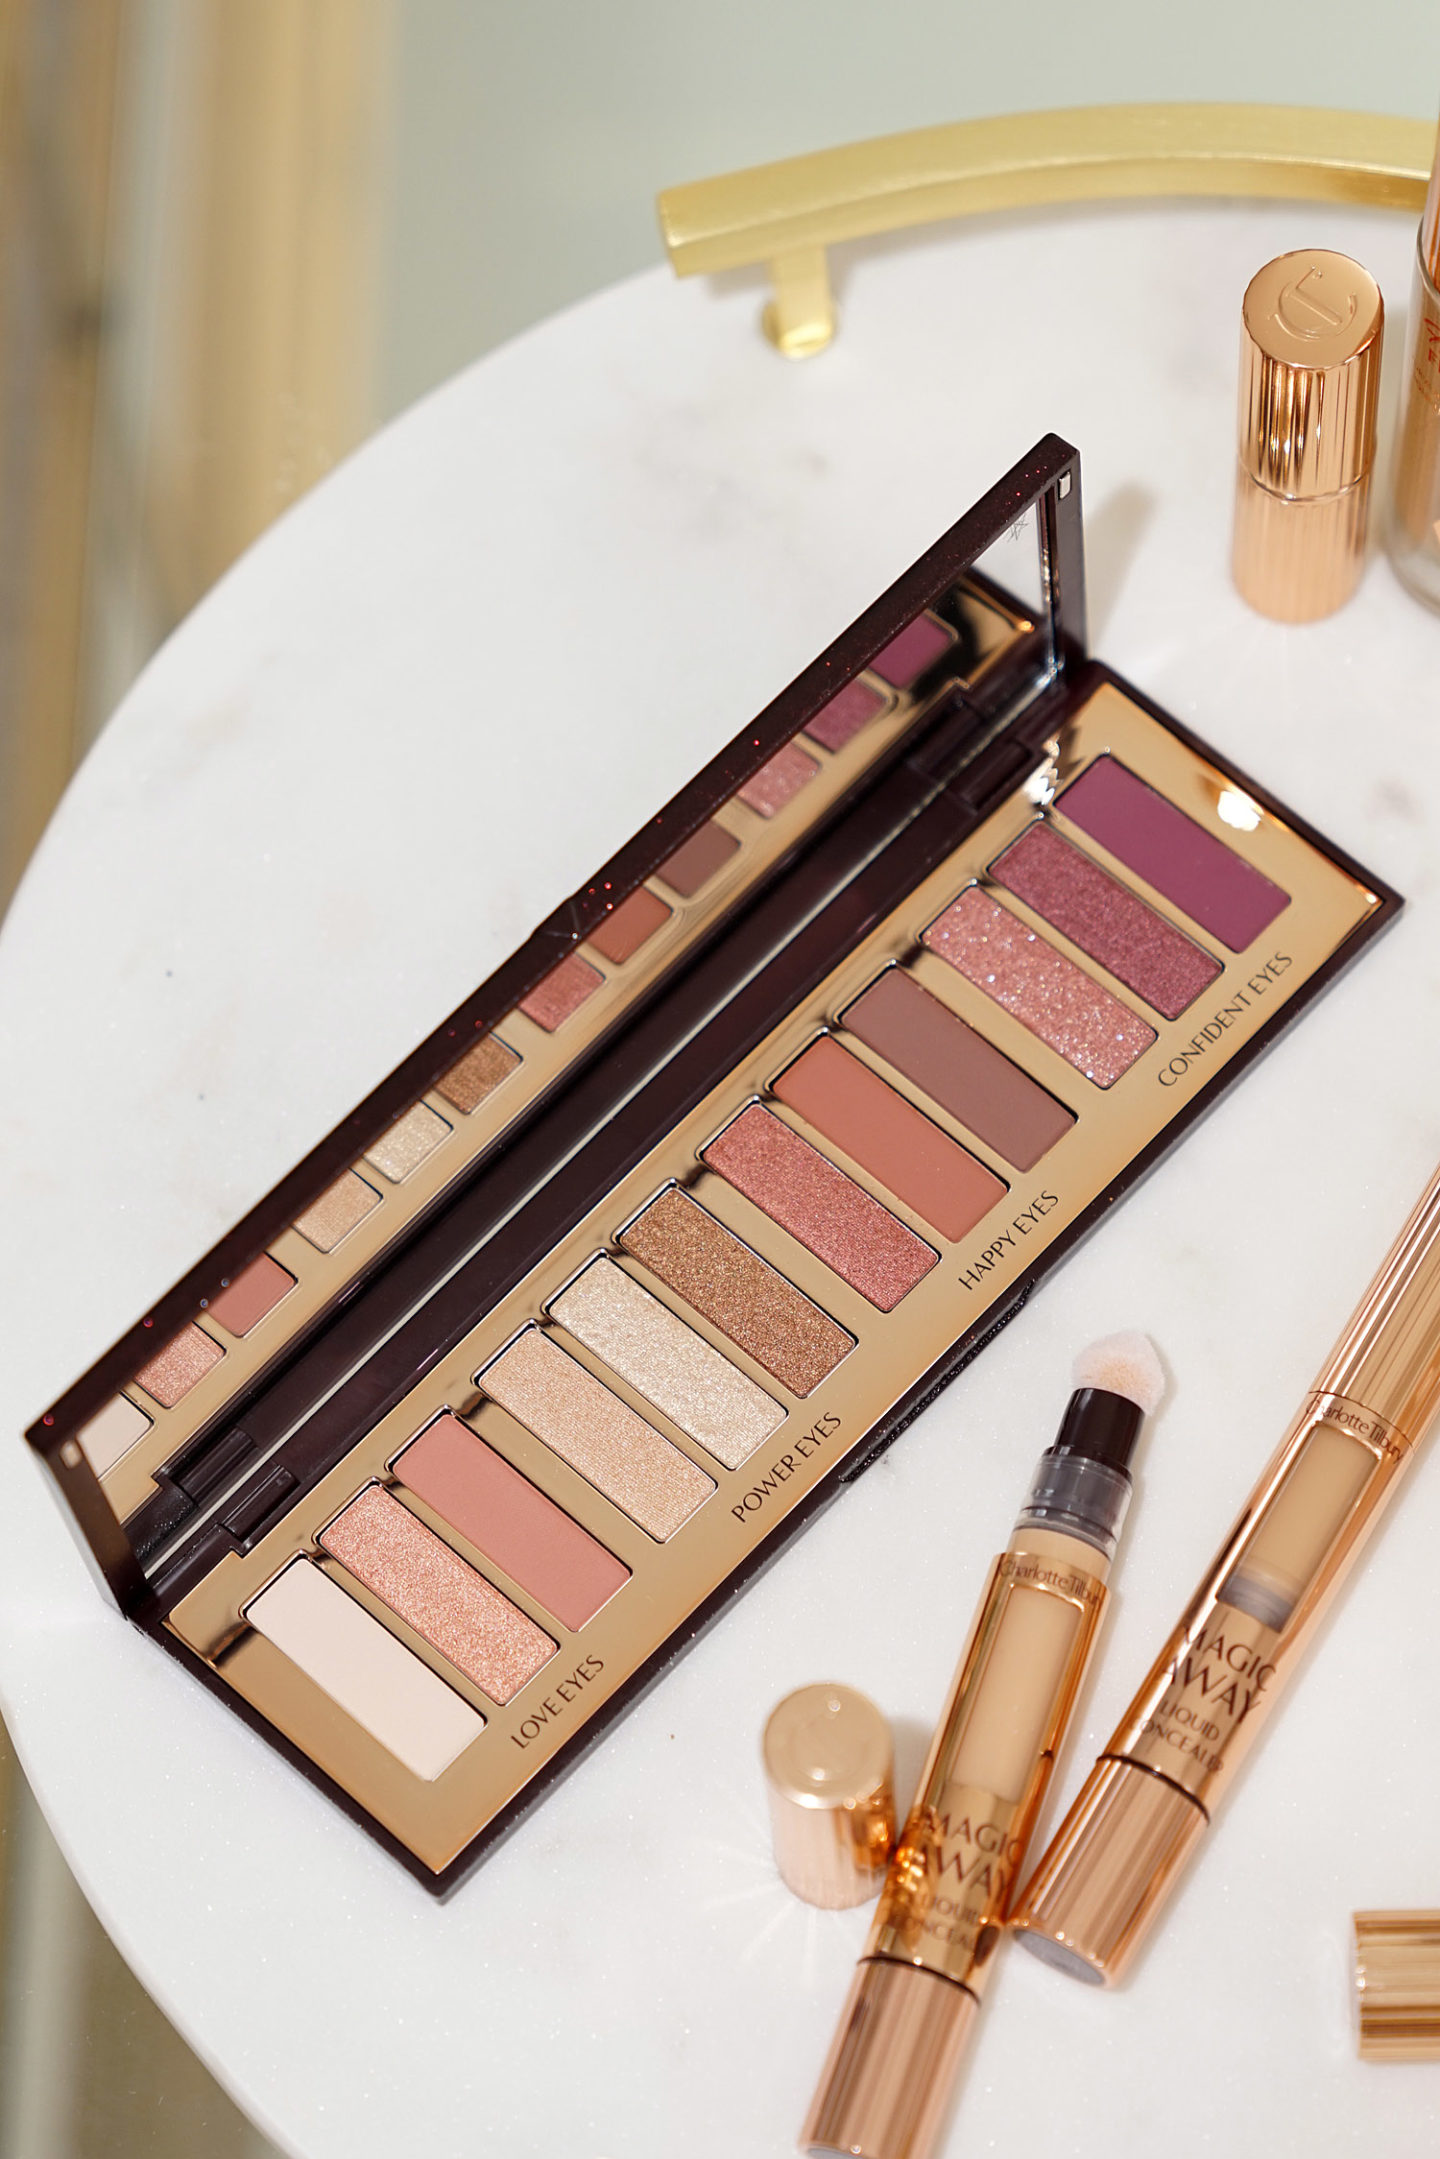 Charlotte Tilbury Stars in Your Eyes Palette Review